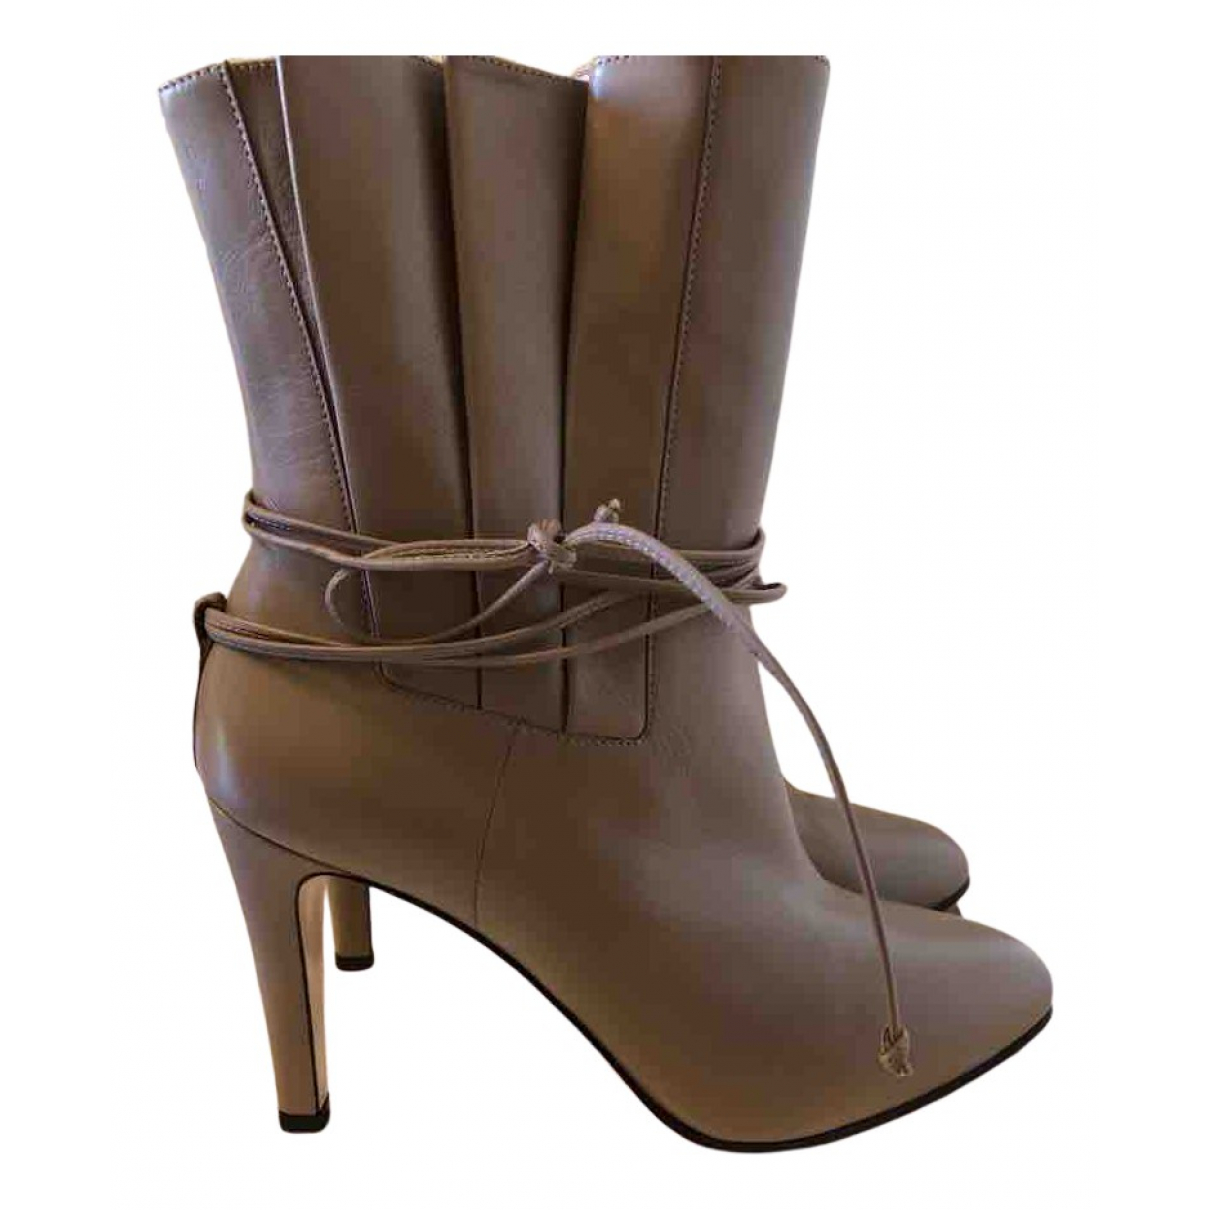 Gucci N Leather Ankle boots for Women 39.5 EU